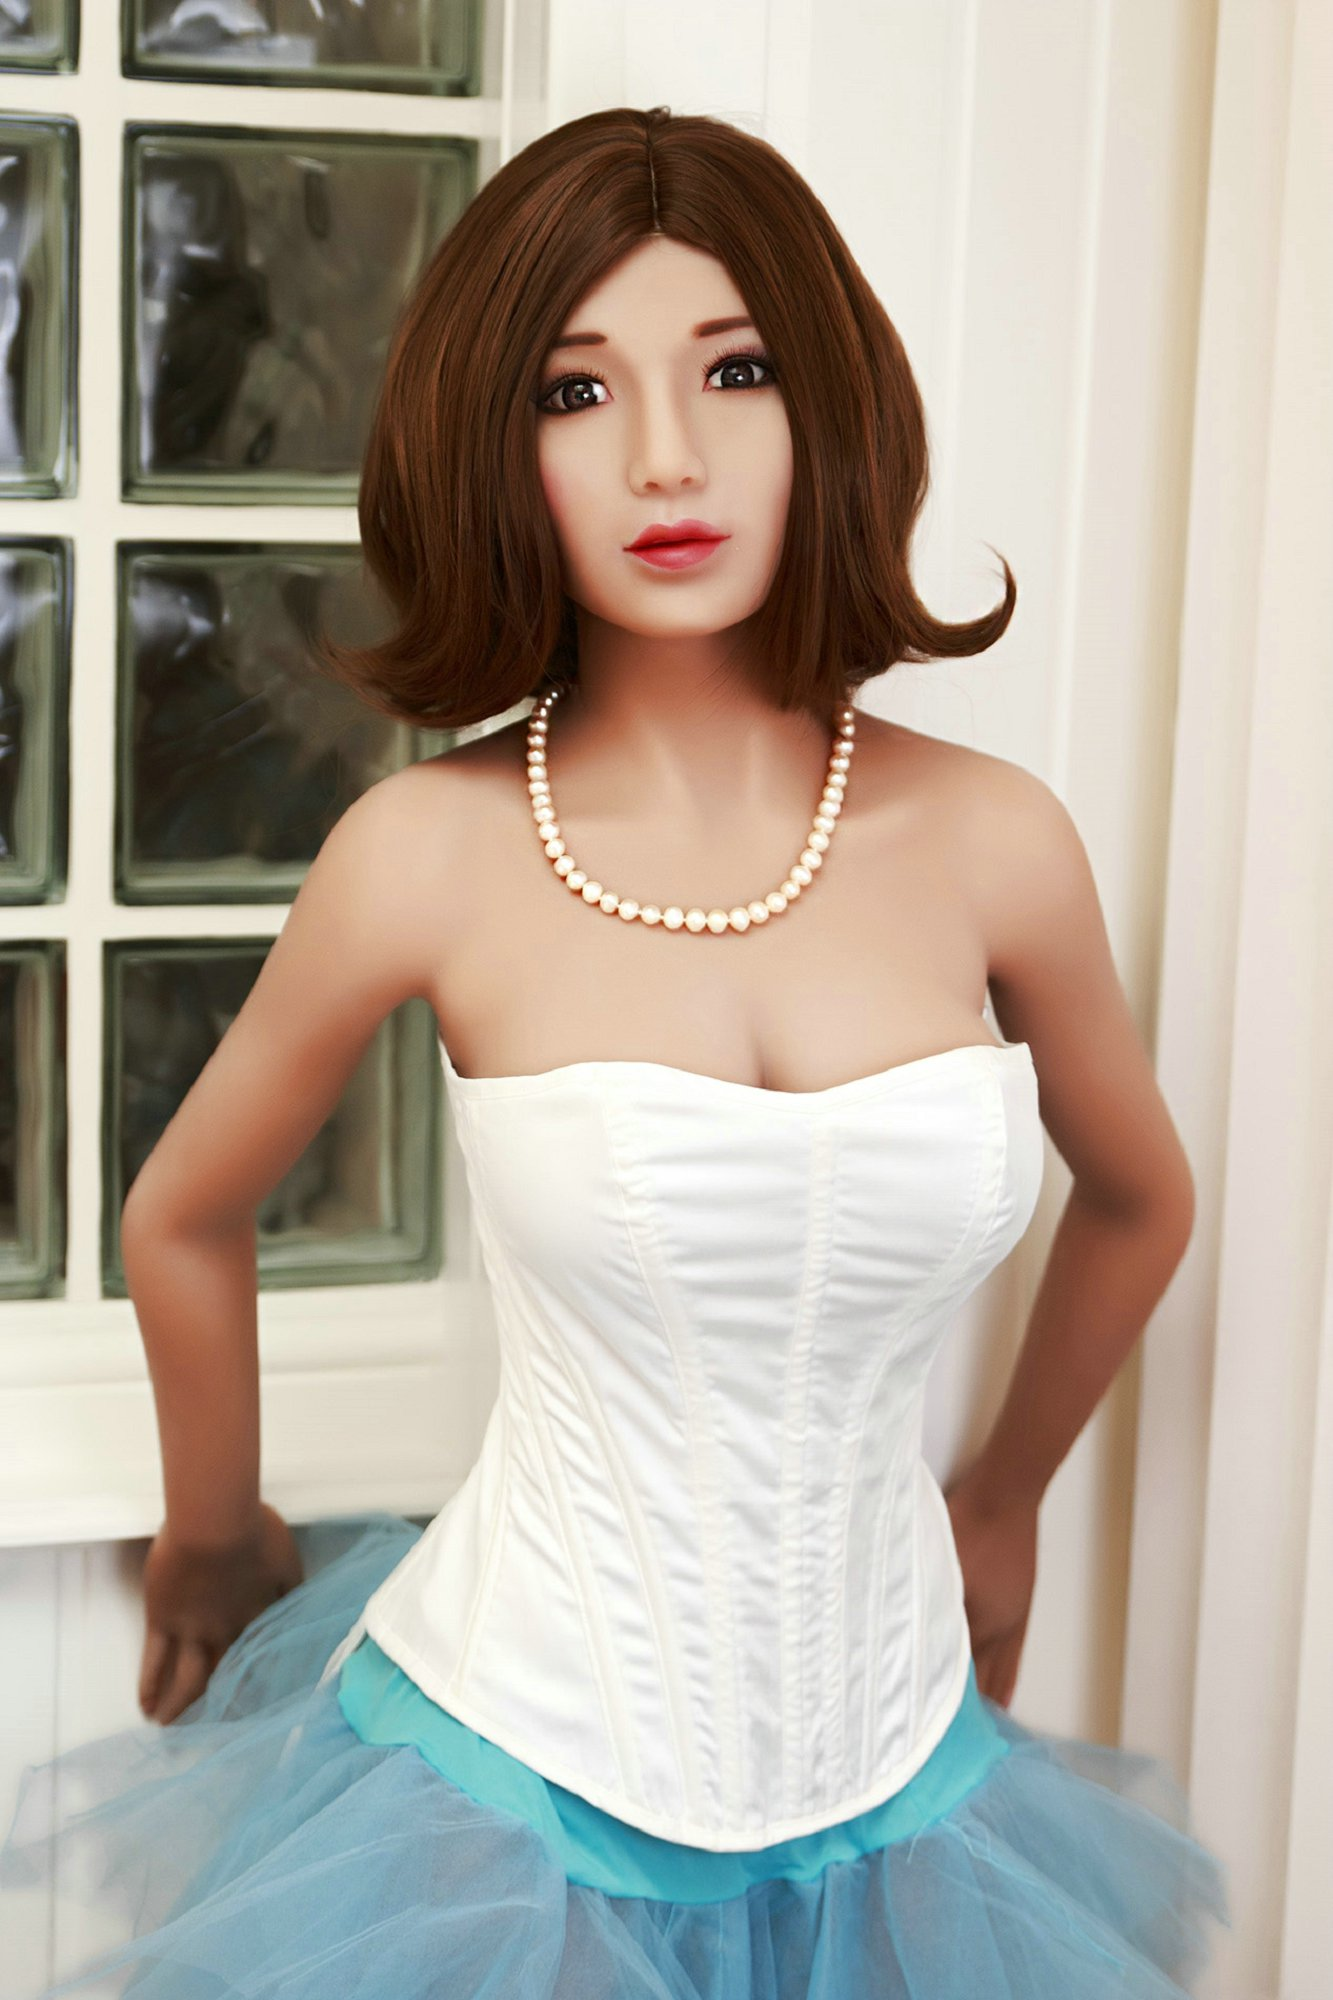 SM-Doris TPE sex doll